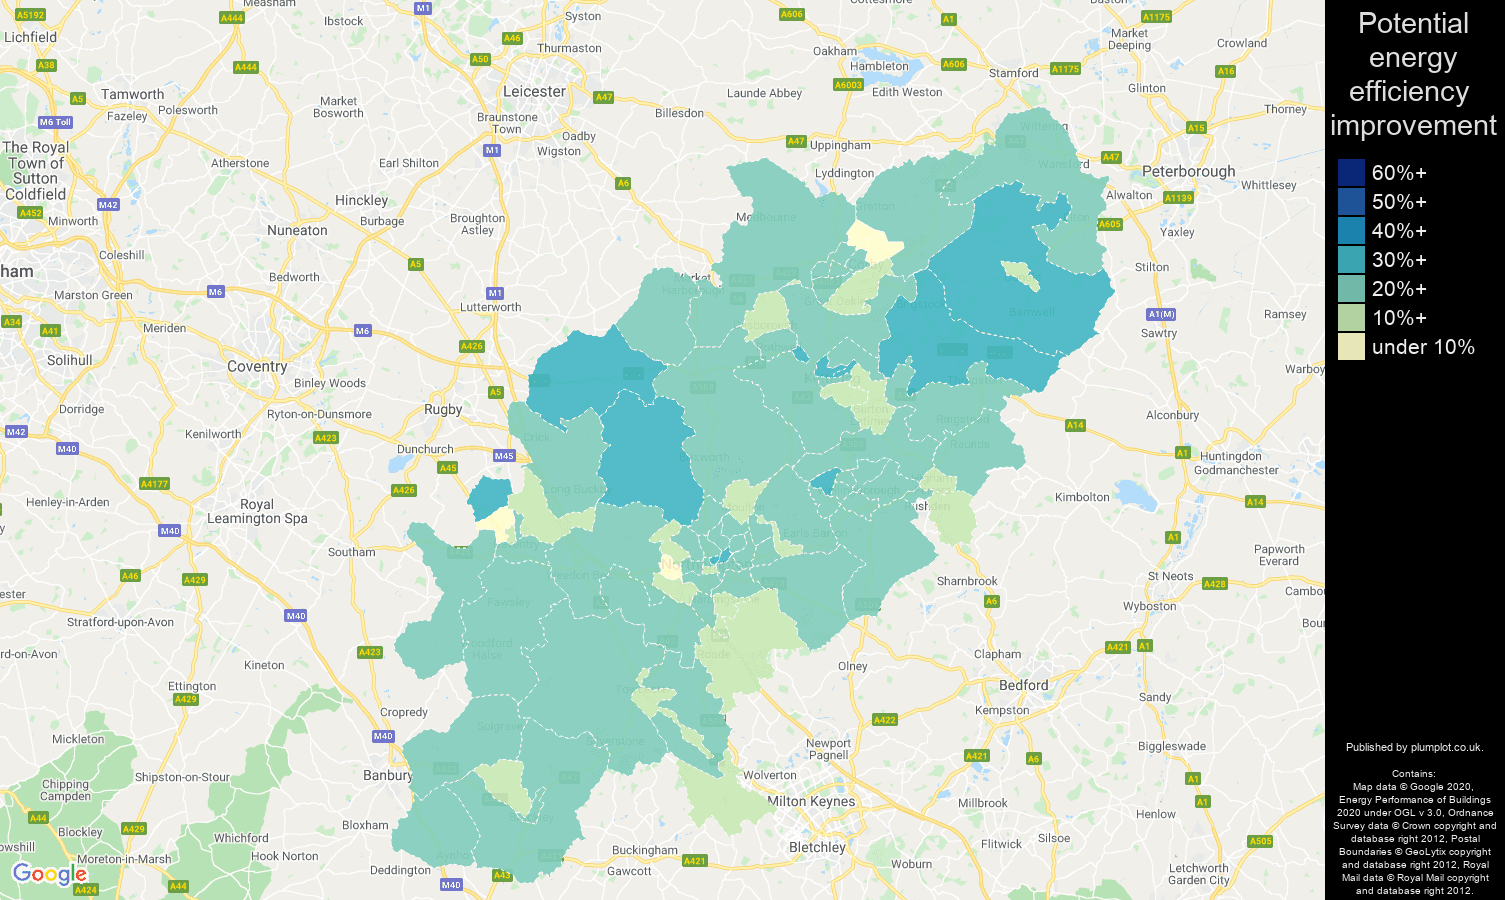 Northamptonshire map of potential energy efficiency improvement of houses